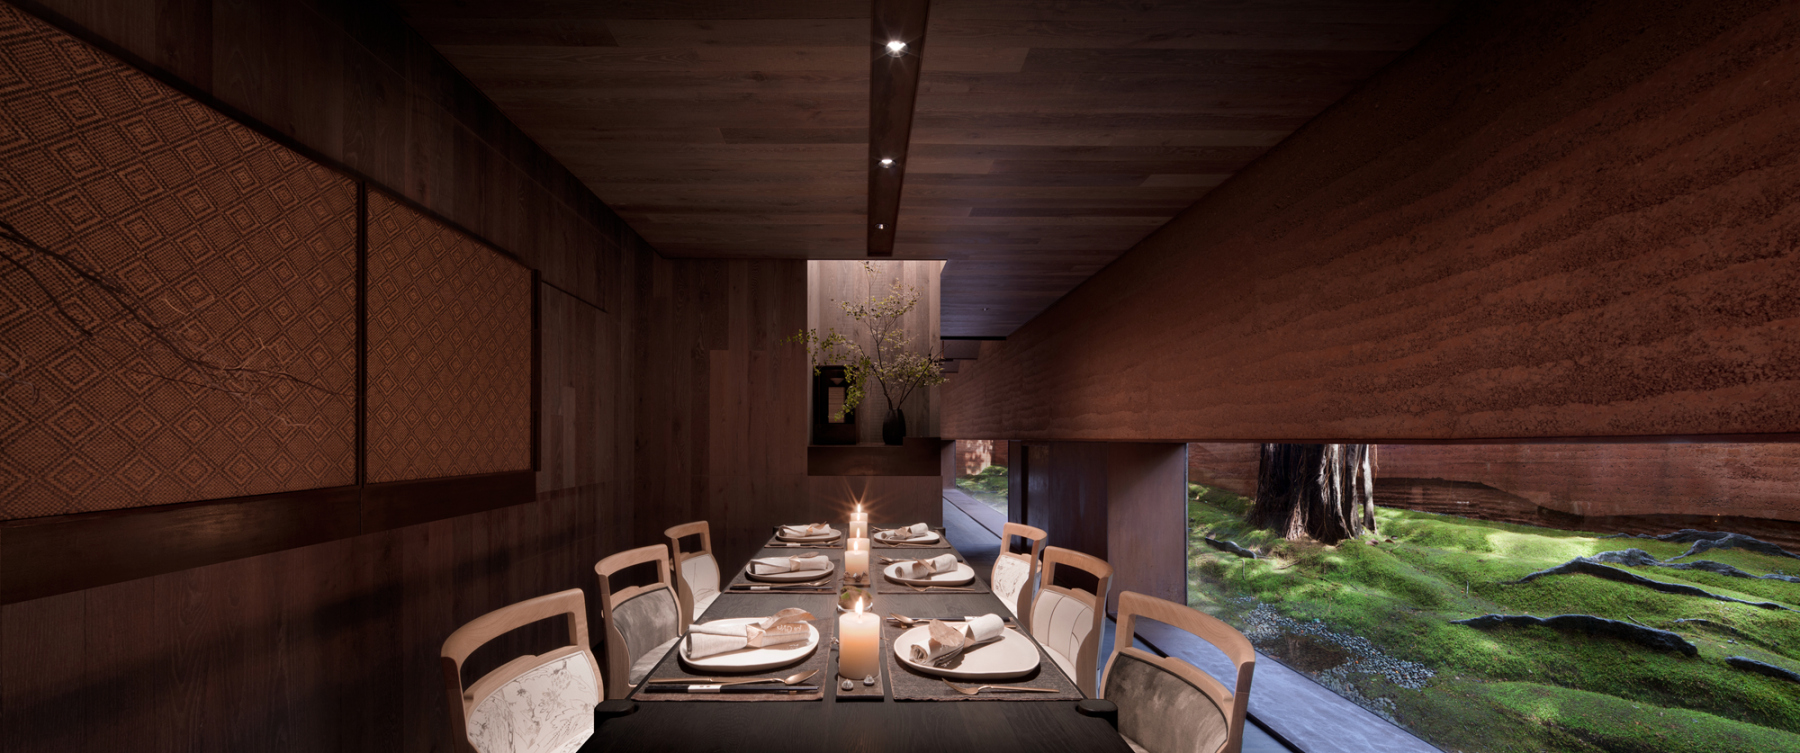 Dong Xi Courtyard by Shenzhen Horizontal Design Co., LTD.